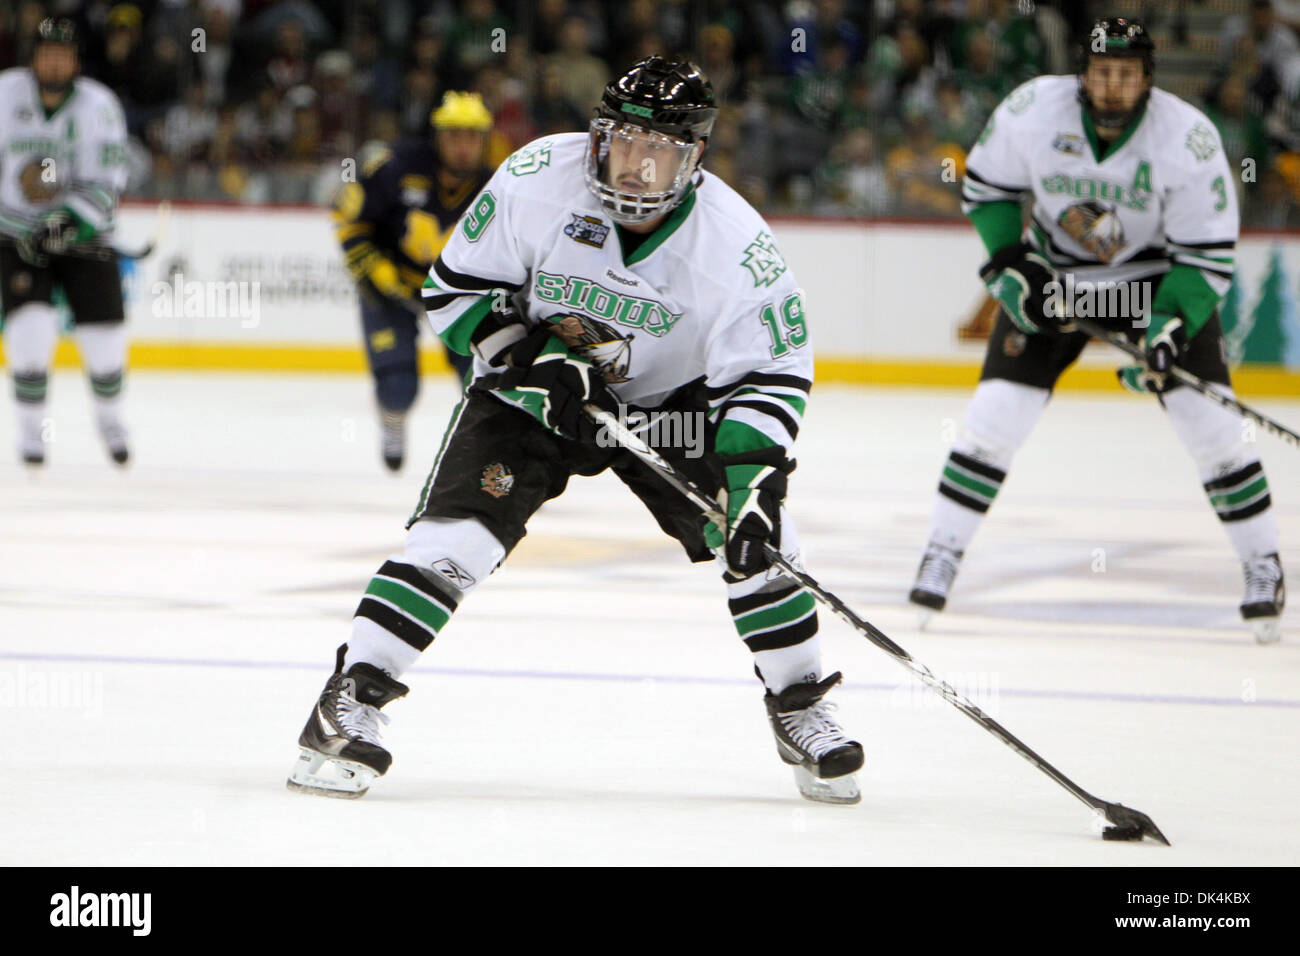 Apr. 7, 2011 - St Paul, Minnesota, U.S - University of North Dakota Fighting Sioux forward Evan Trupp (19) tees up the puck in the second period of the NCAA Frozen Four between the University of Michigan Wolverines and the North Dakota Fighting Sioux at the Xcel Energy Center St, Paul, MN. The score remained 1-0 Michigan after two periods. (Credit Image: © Steve Kotvis/Southcreek G - Stock Image